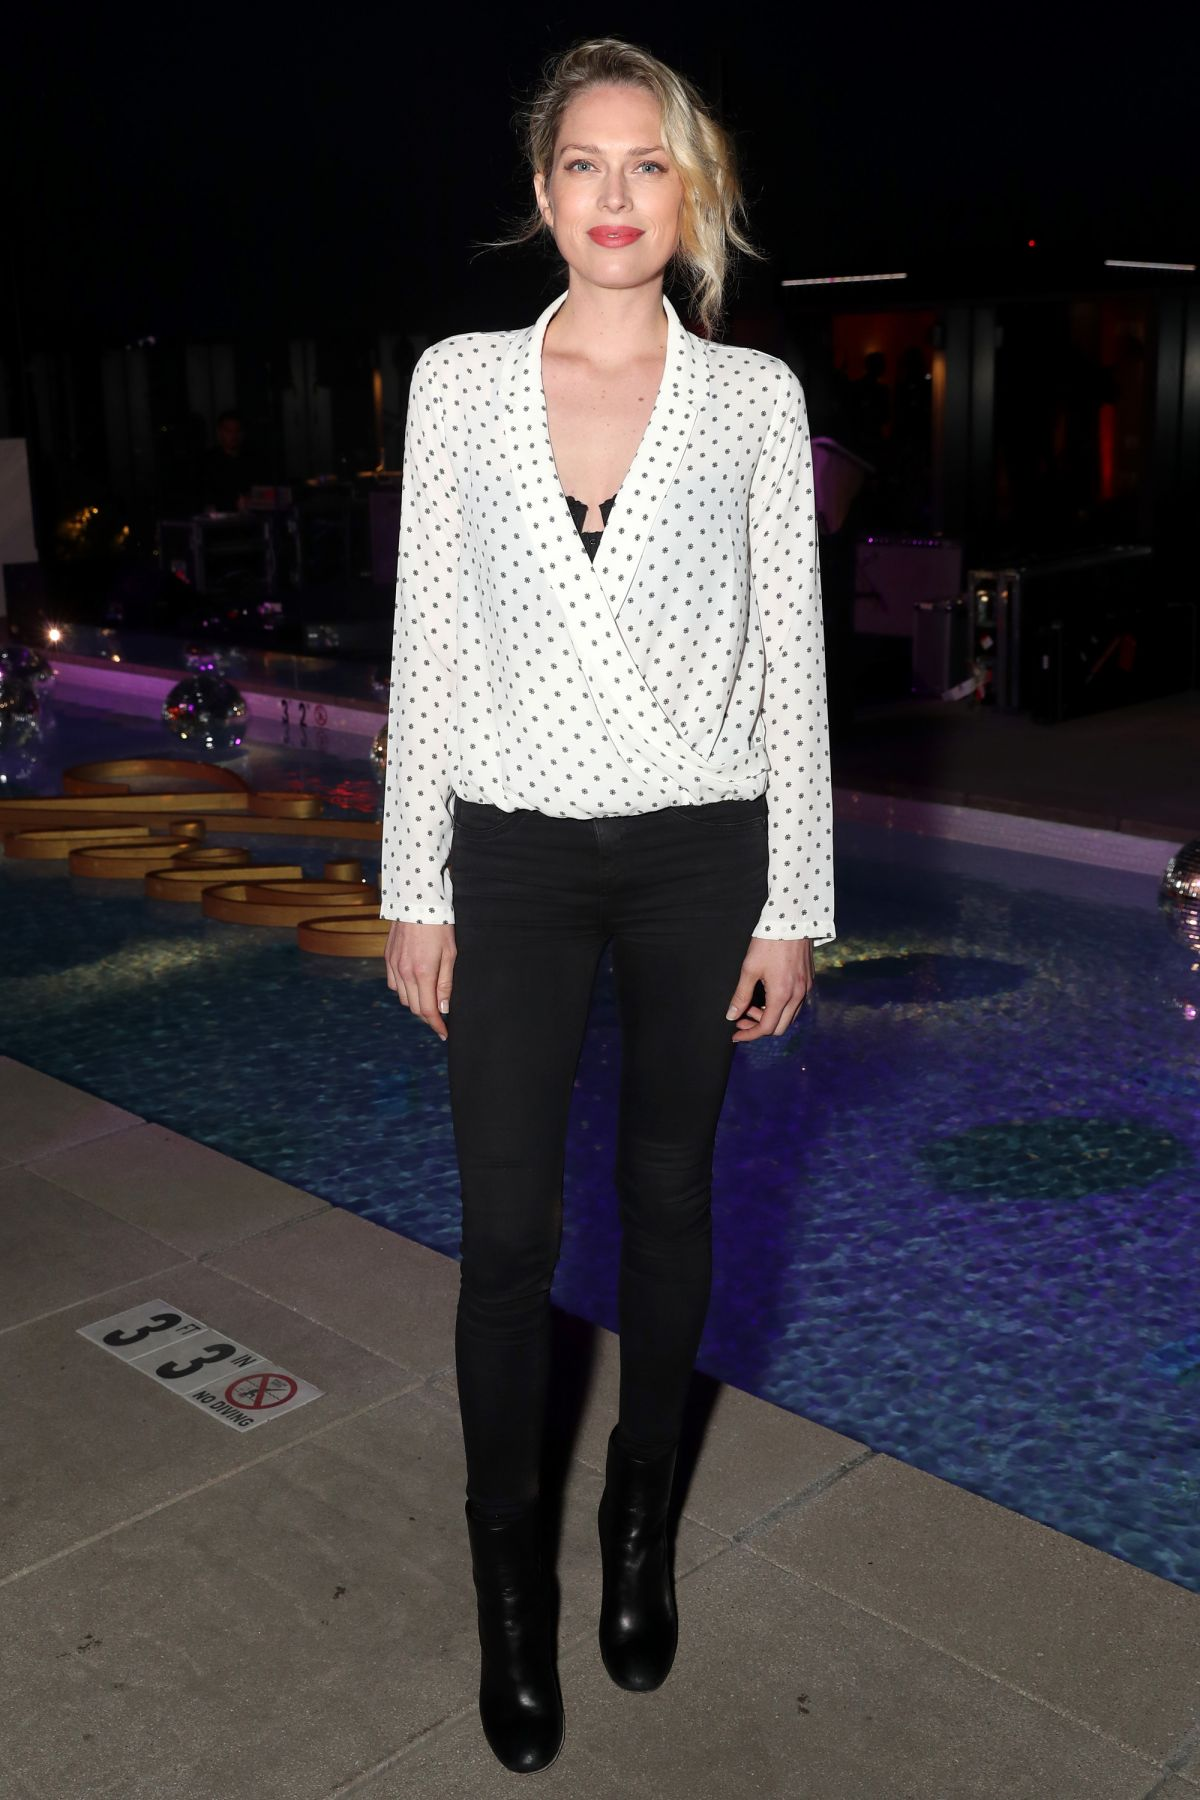 ERIN FOSTER at Roger Vivier Event in Los Angeles 05/04/2017